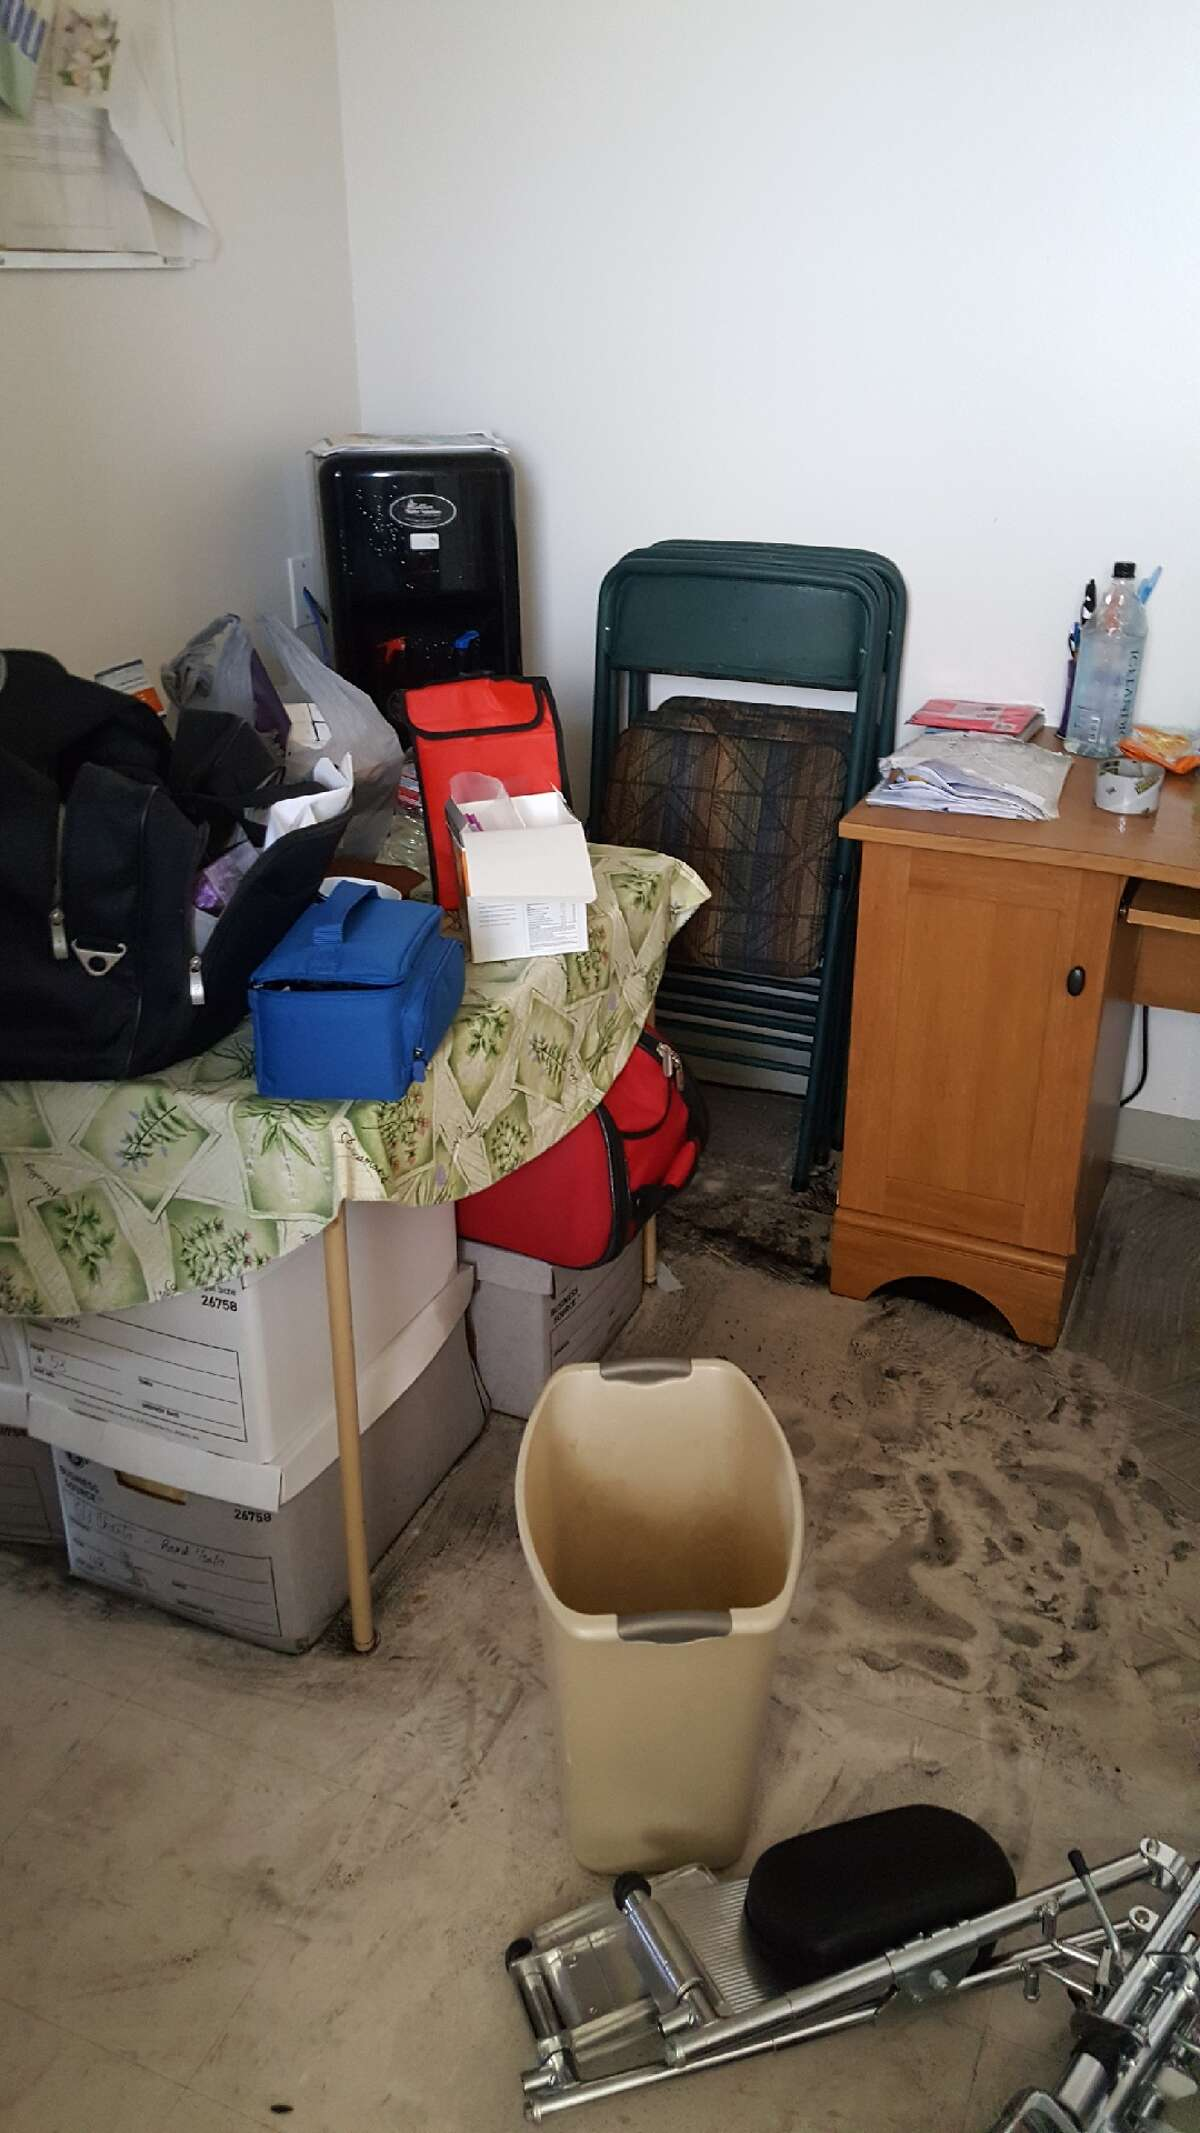 Hurricane Harvey took the roof of Dr. John Soule's Victoria practice and soaked computers, servers, patient charts, most everything. He's currently practicing in a makeshift office.